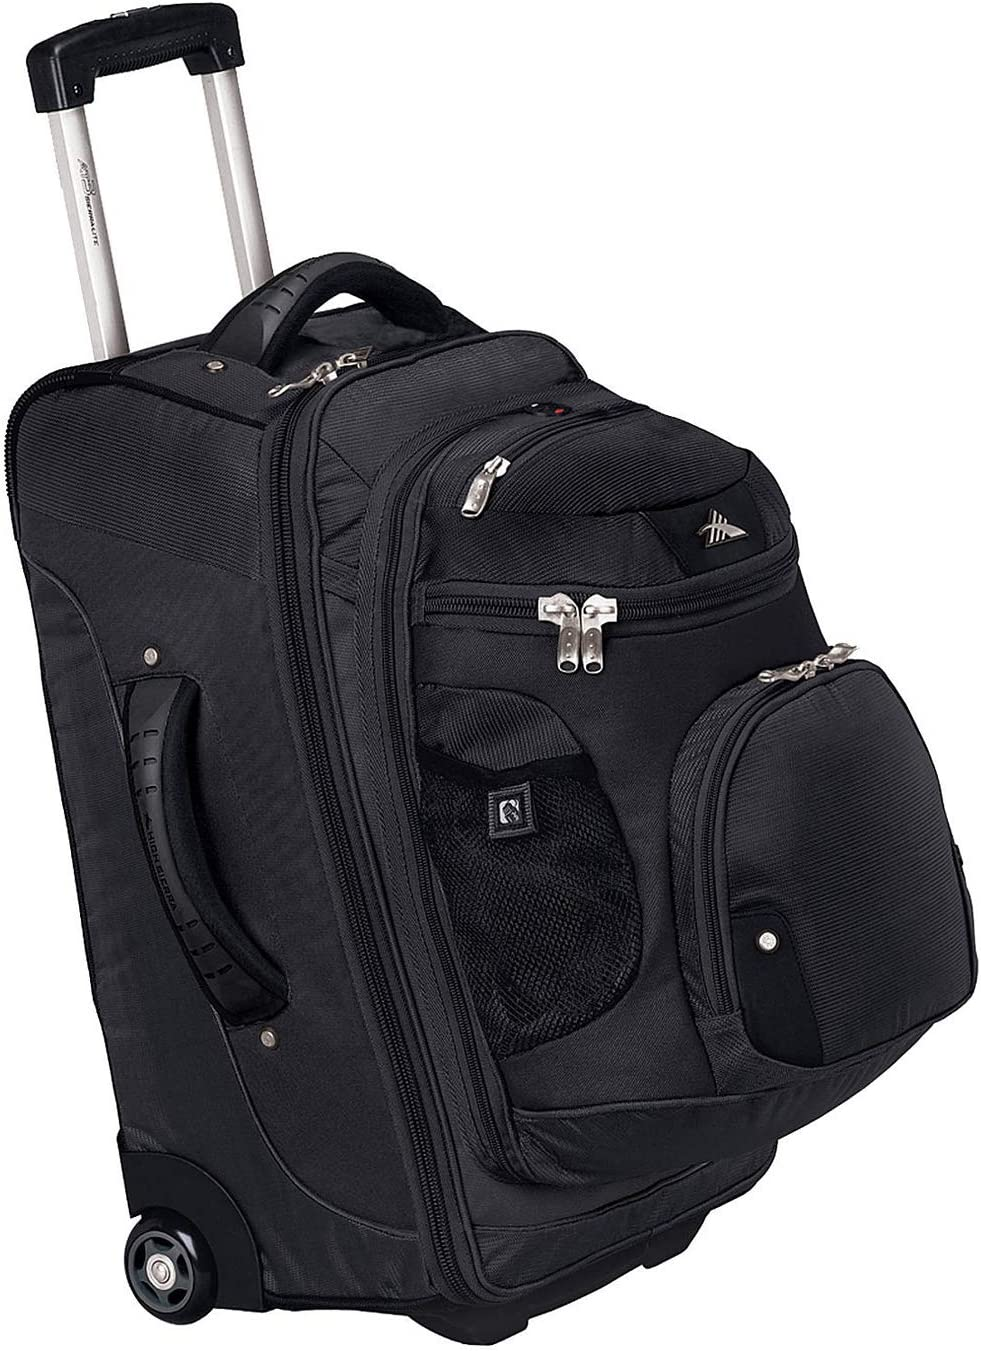 The High Sierra AT3 Carry-On Wheeled Backpack travel product recommended by Tracy Anderson on Lifney.